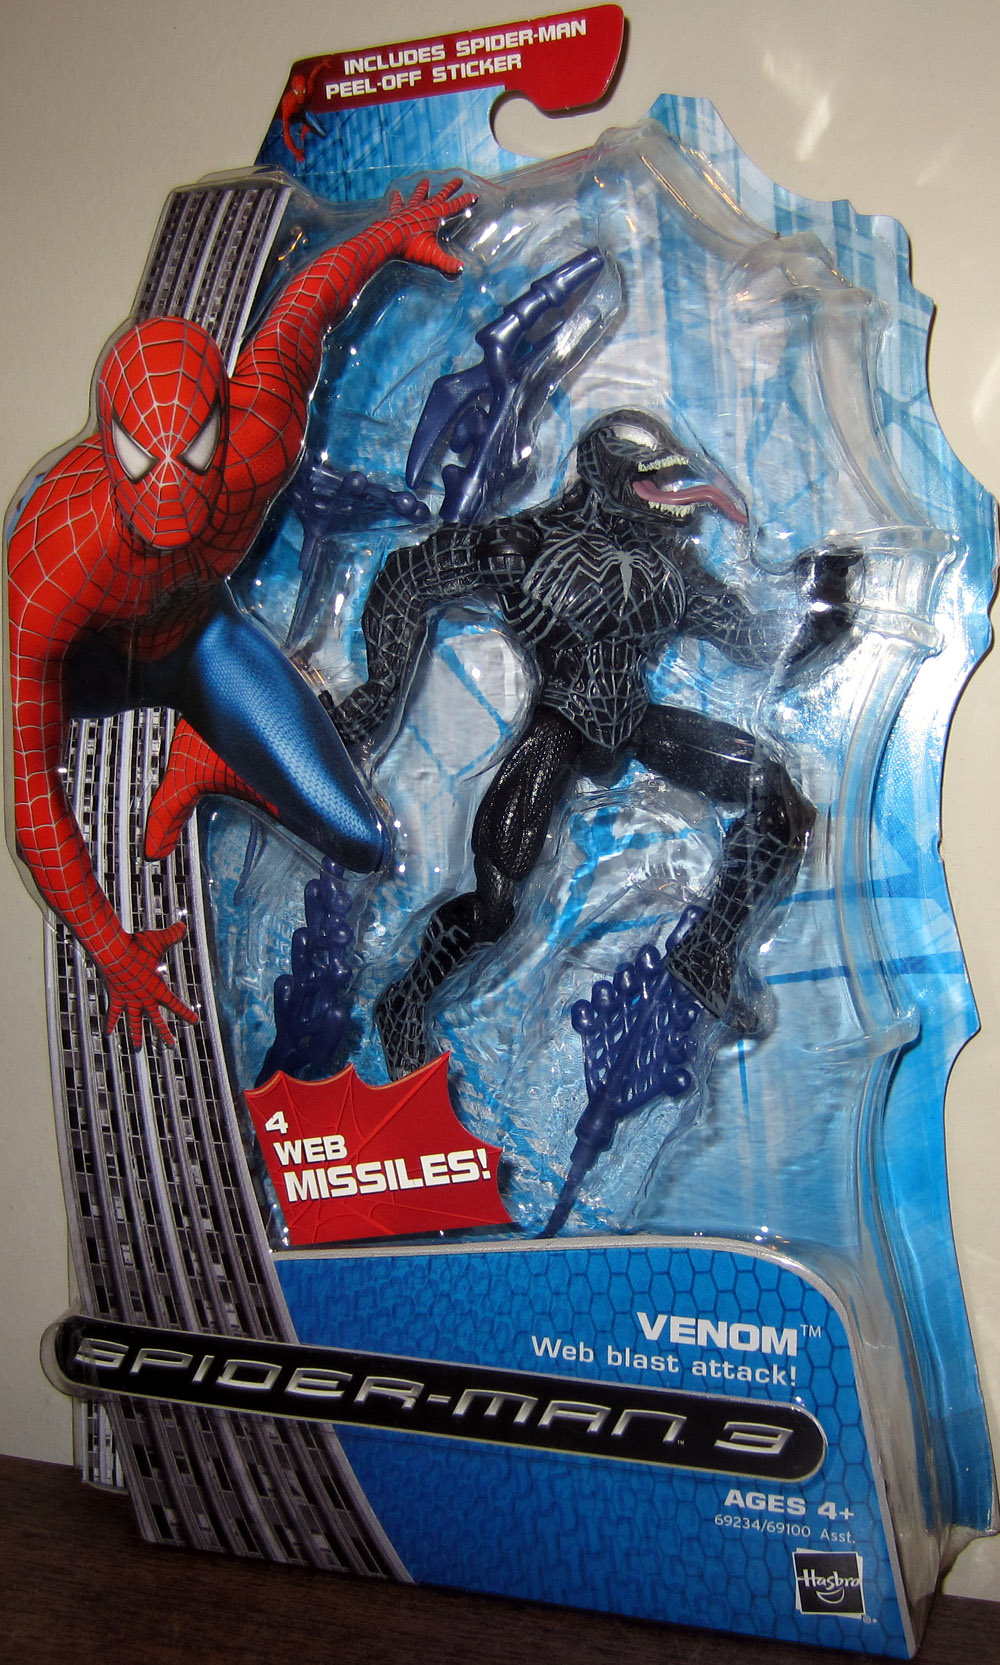 Venom with web blast attack (Spider-Man 3)